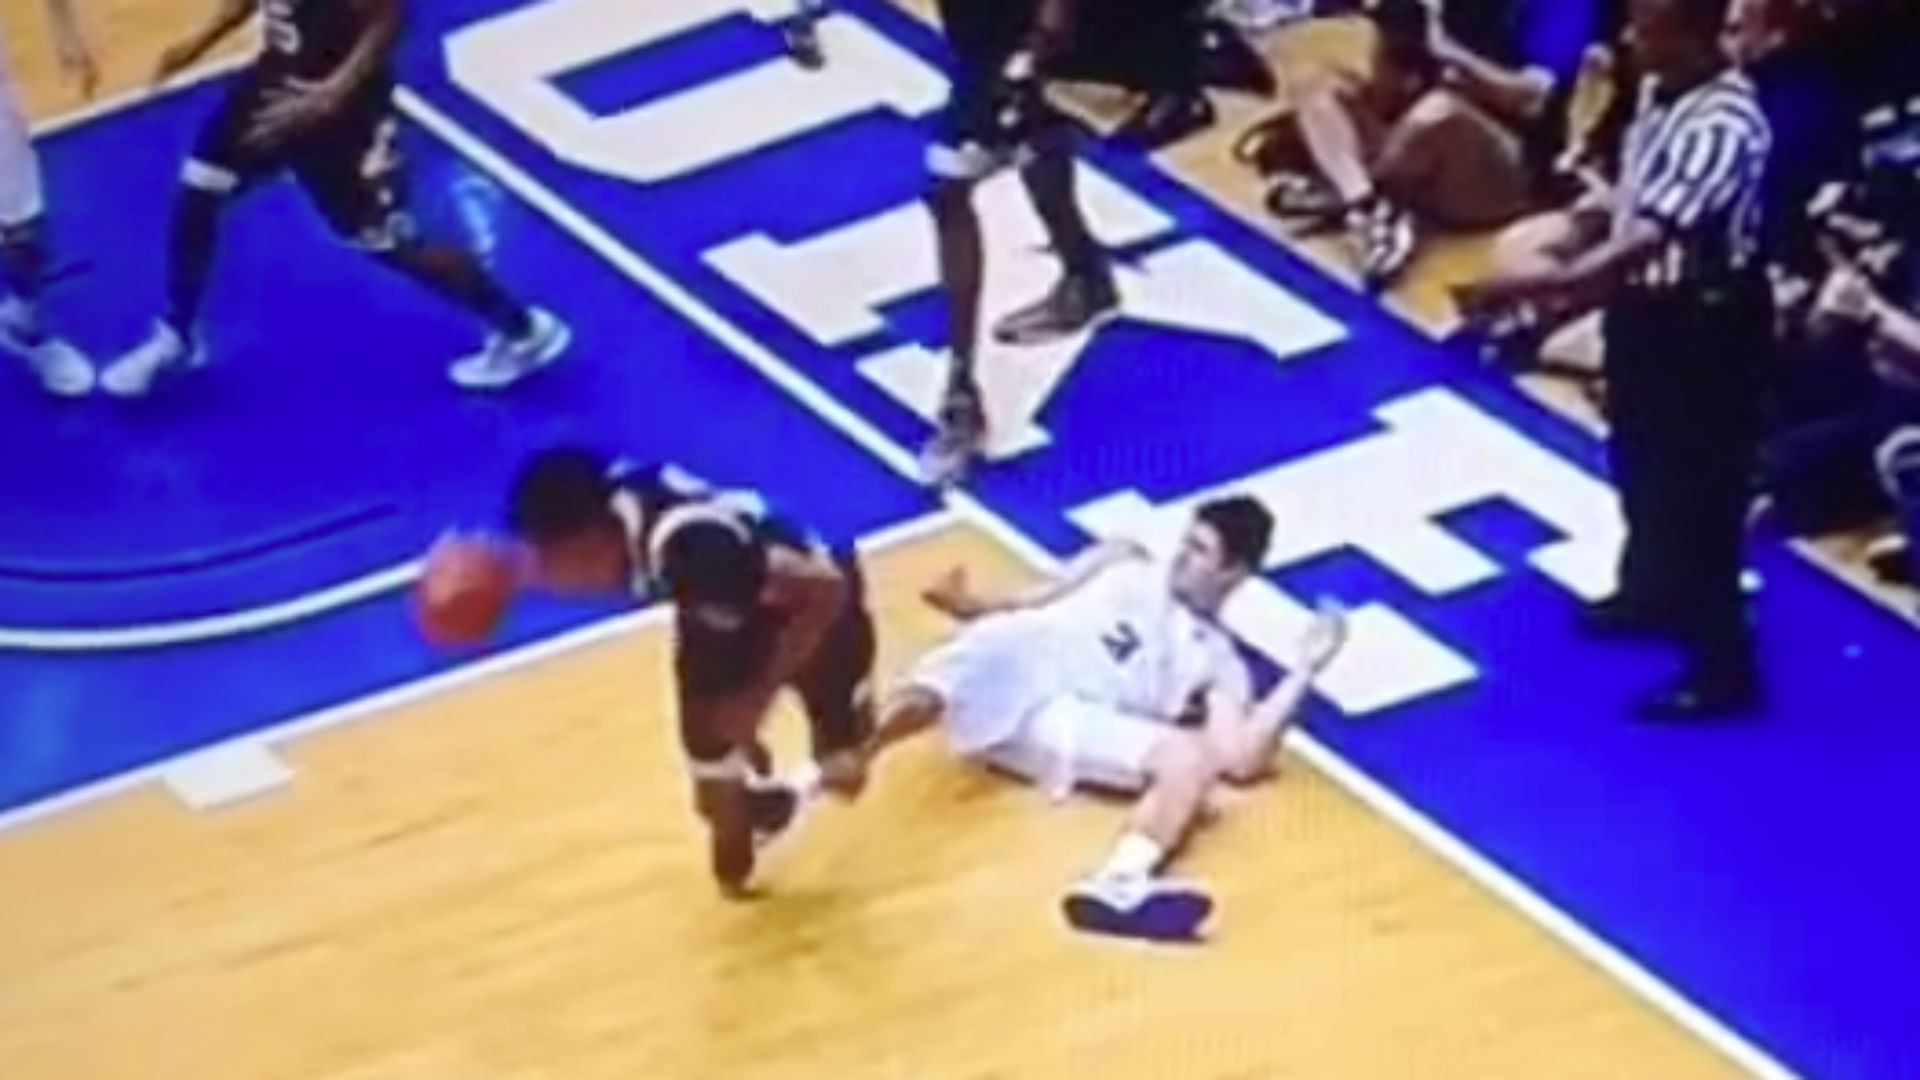 Duke's Grayson Allen earns flagrant foul for intentionally tripping  Louisville player | NCAA Basketball | Sporting News